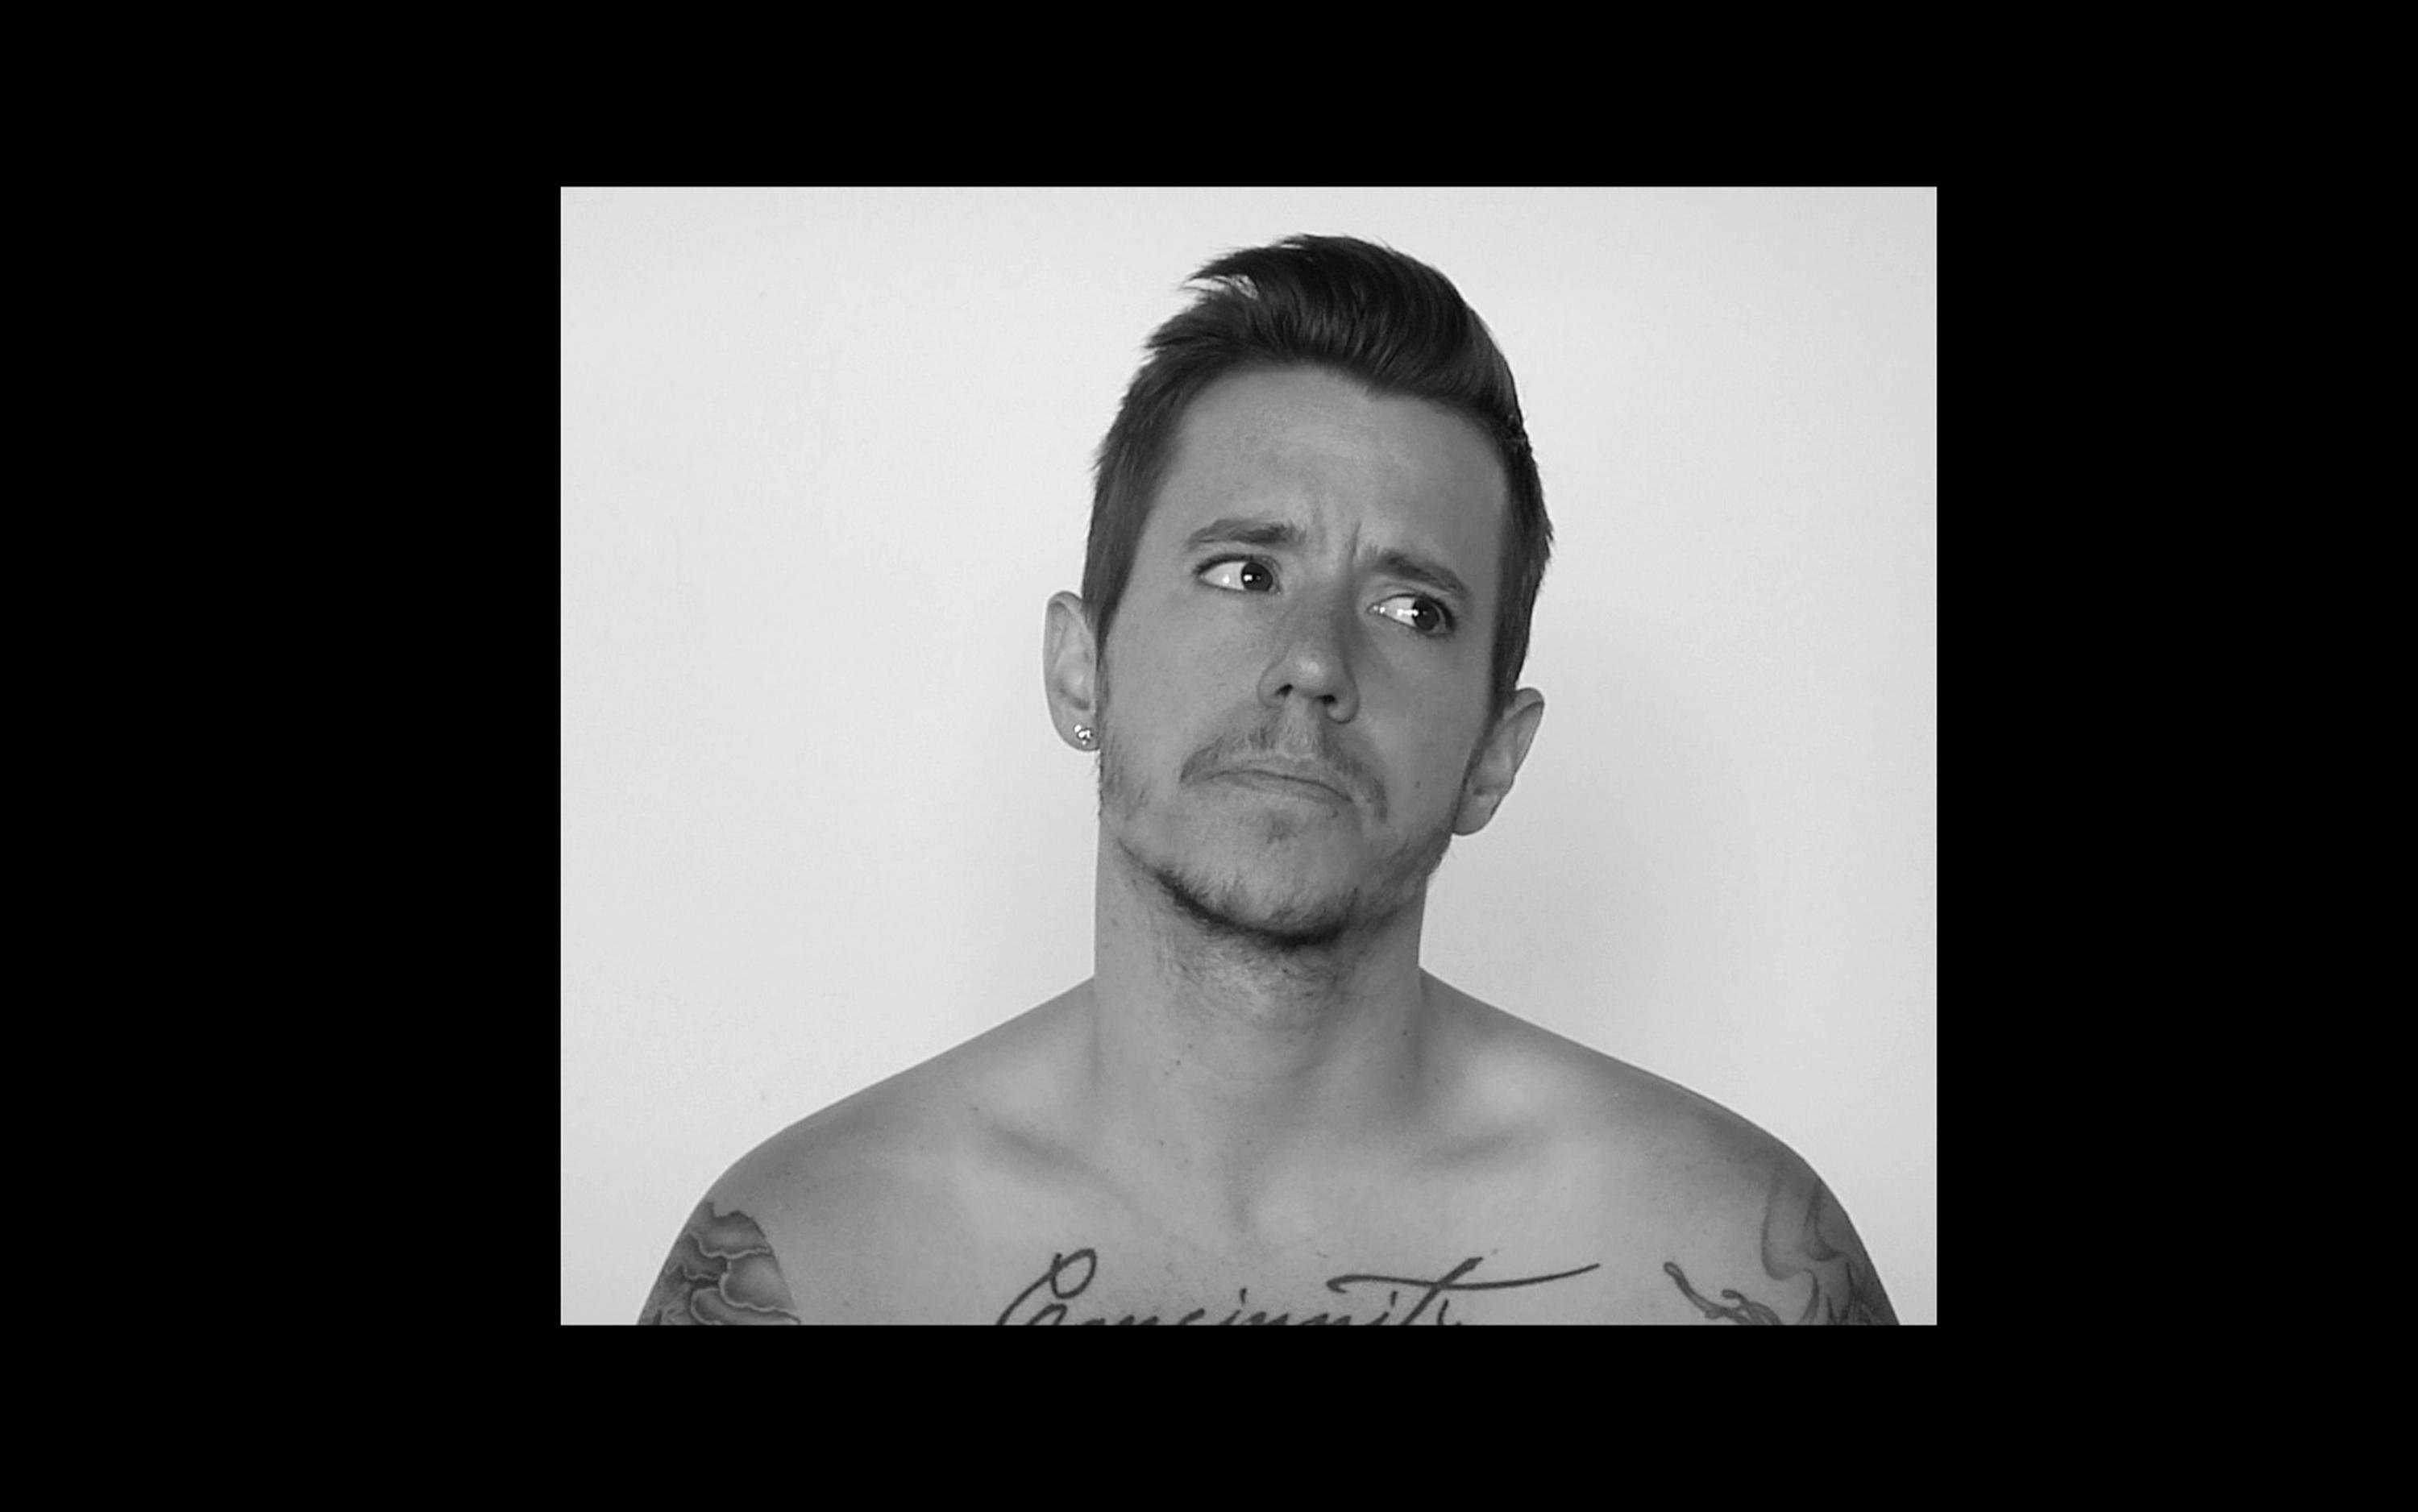 Black and white video still of a young white man's head and torso in front of a white background. He appears shirtless with hair gelled back and looks to his left. He has a mustache and stubble beard, and tattoos on both arms and chest that are cropped by the edge of the frame.